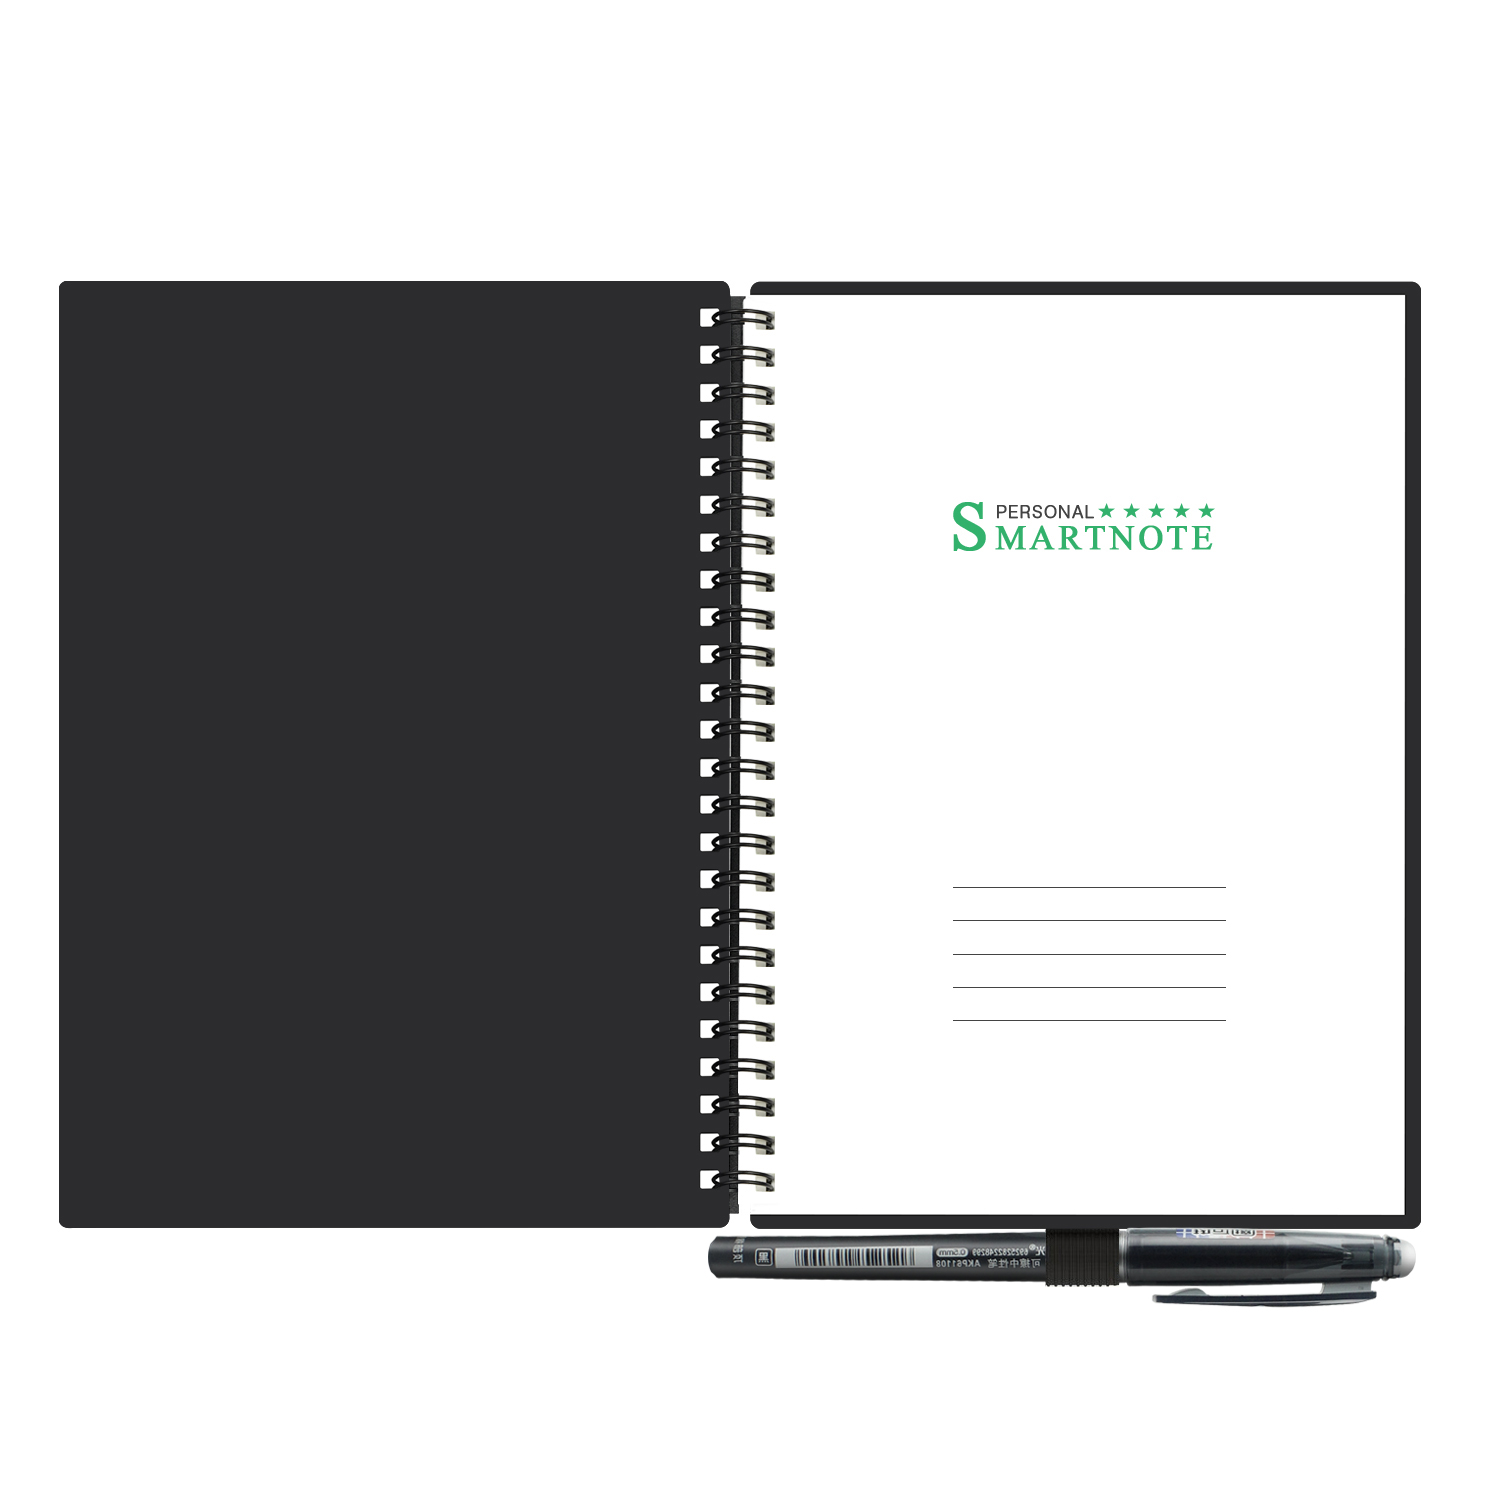 Reusable Erasable Notebook B5 Microwave Wave Cloud Erase Notepad Smart Notebook Note Pad Lined With Pen